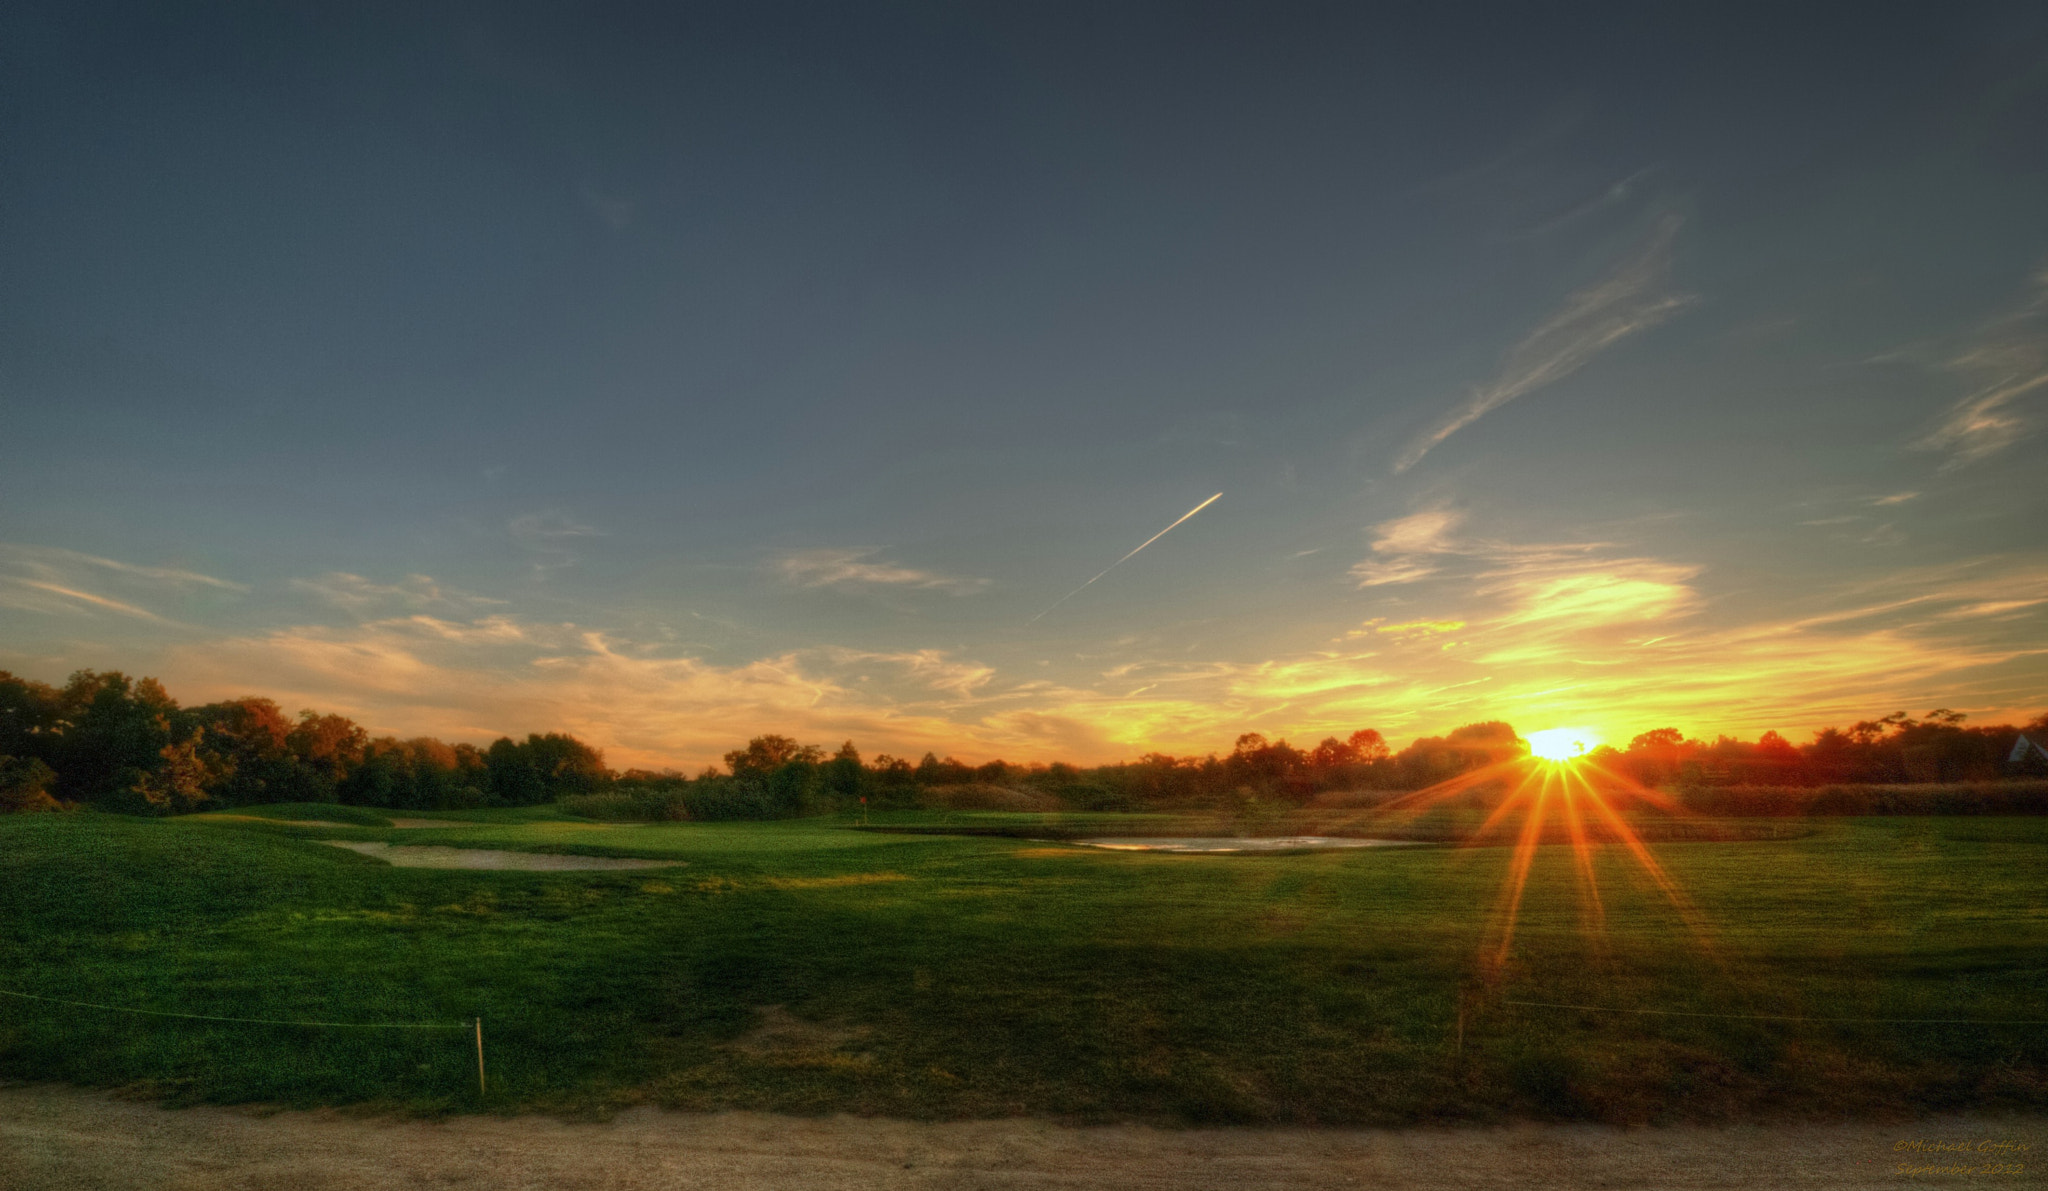 Photograph Golf course at Sunset by MICHAEL GOFFIN on 500px